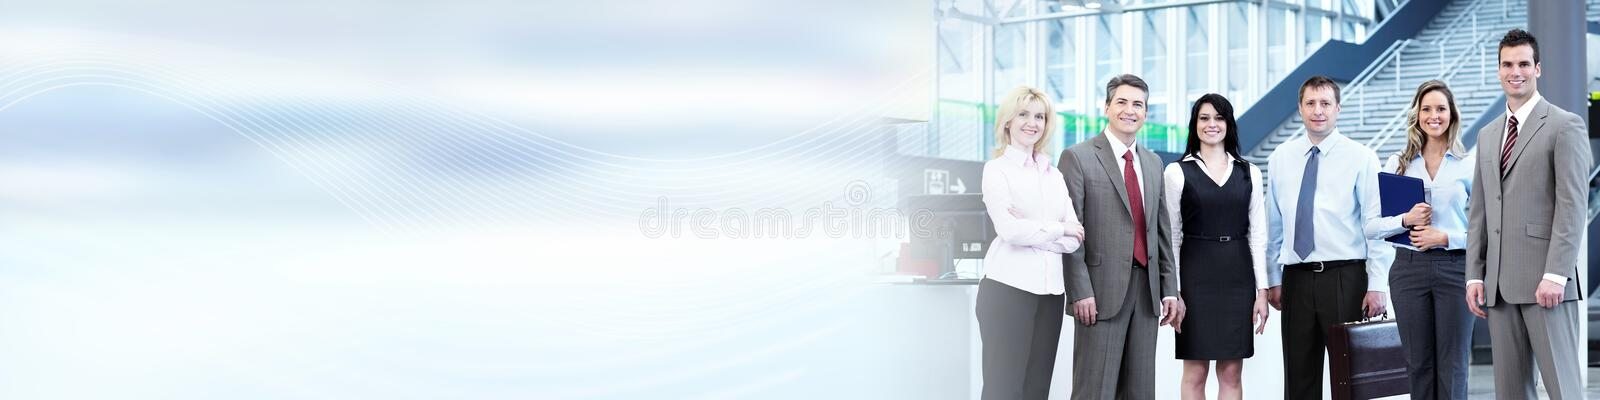 Business team. Business people group working. Financial service concept royalty free stock photography